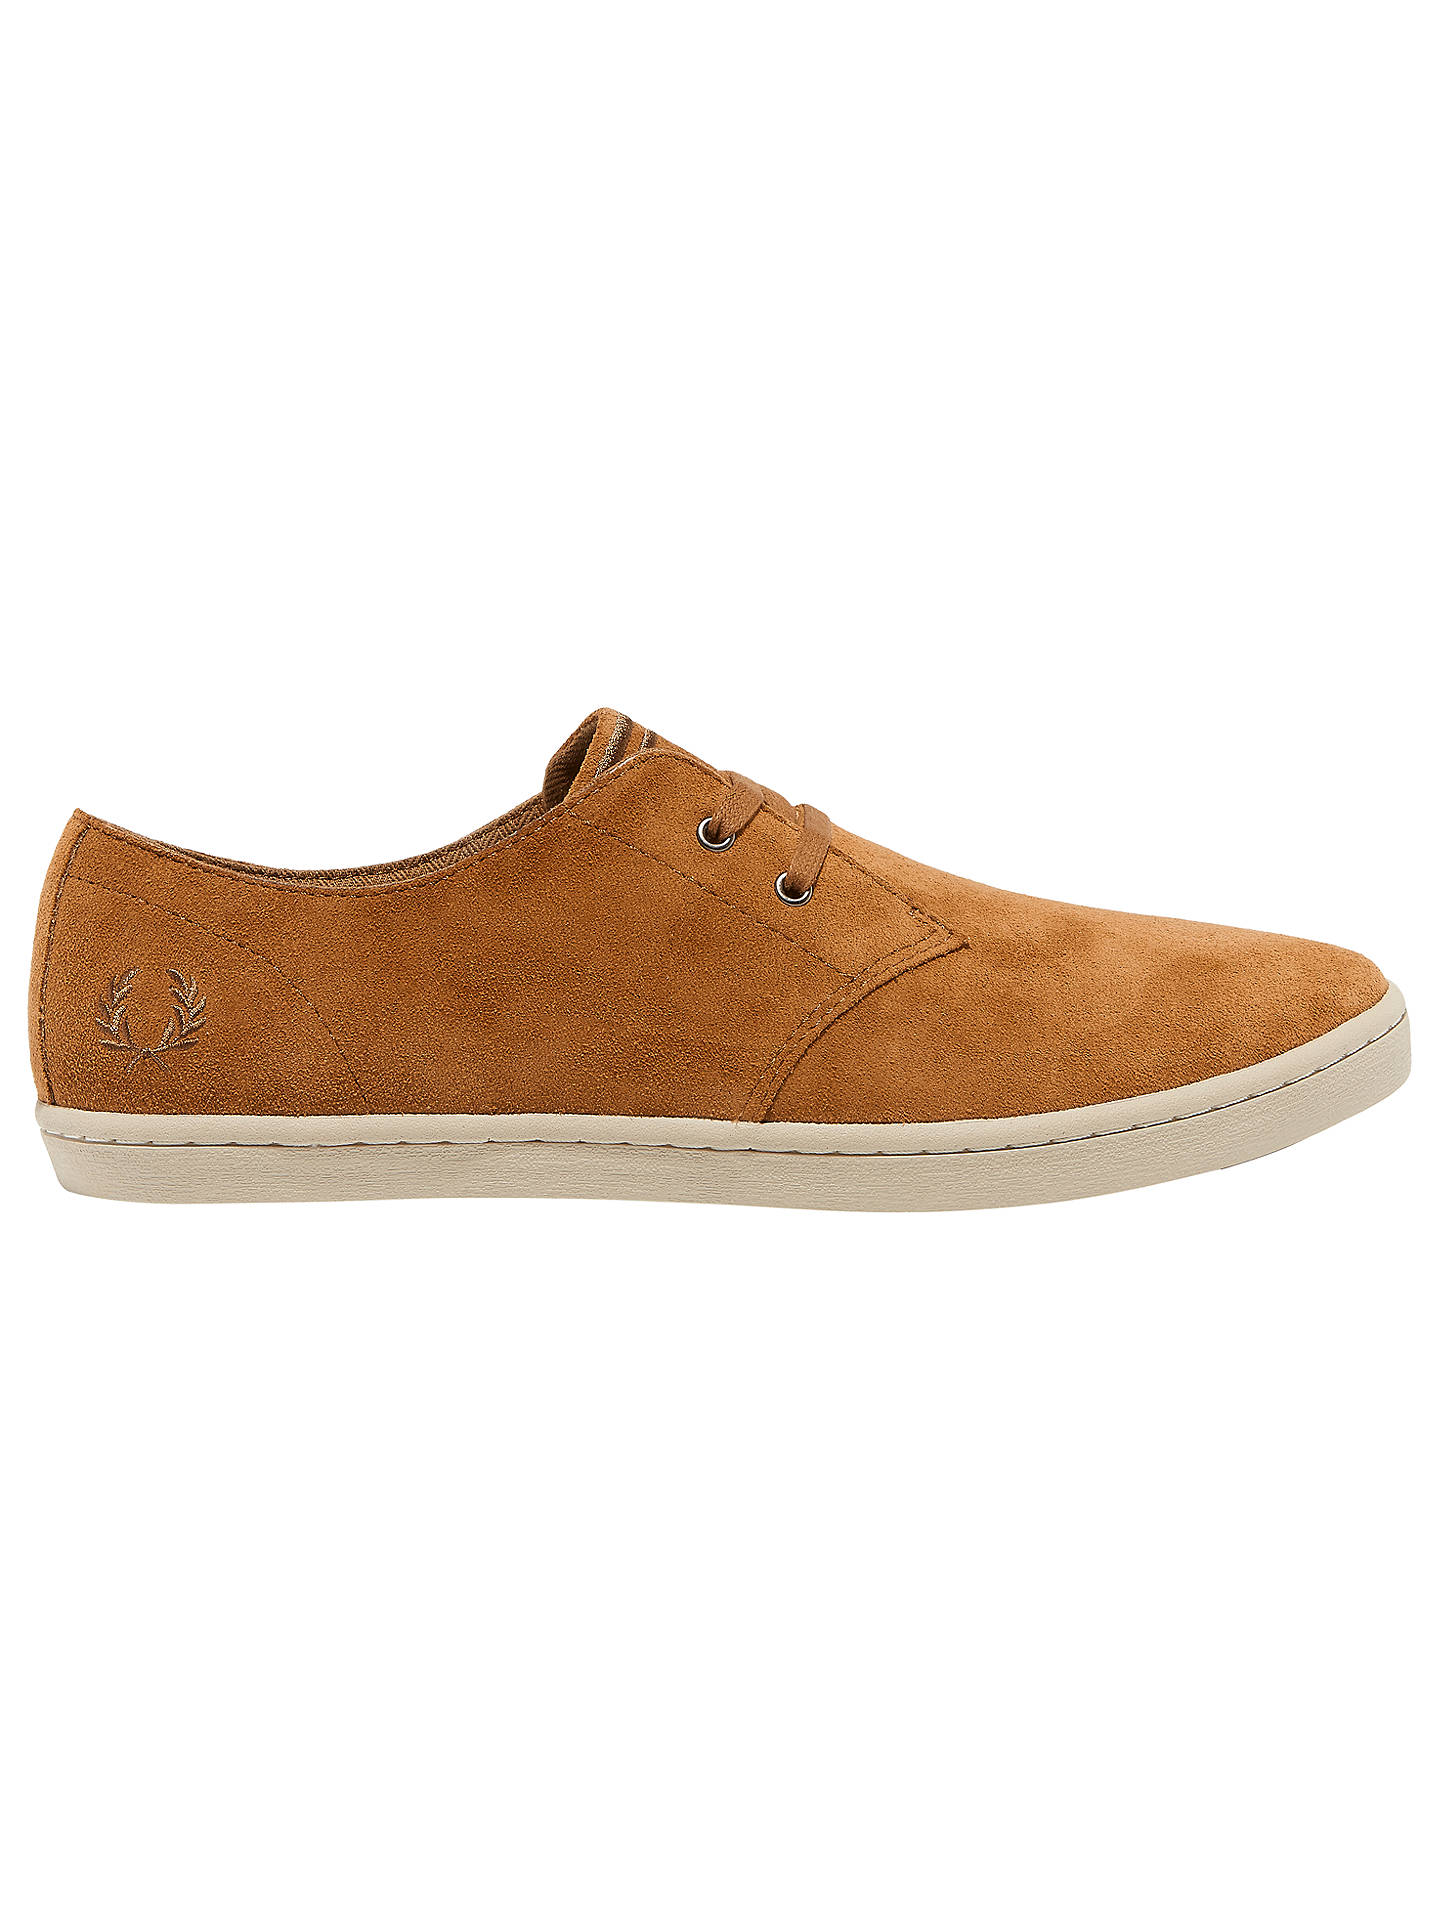 meilleur service 94a01 b91b7 Fred Perry Byron Low Suede Trainer at John Lewis & Partners